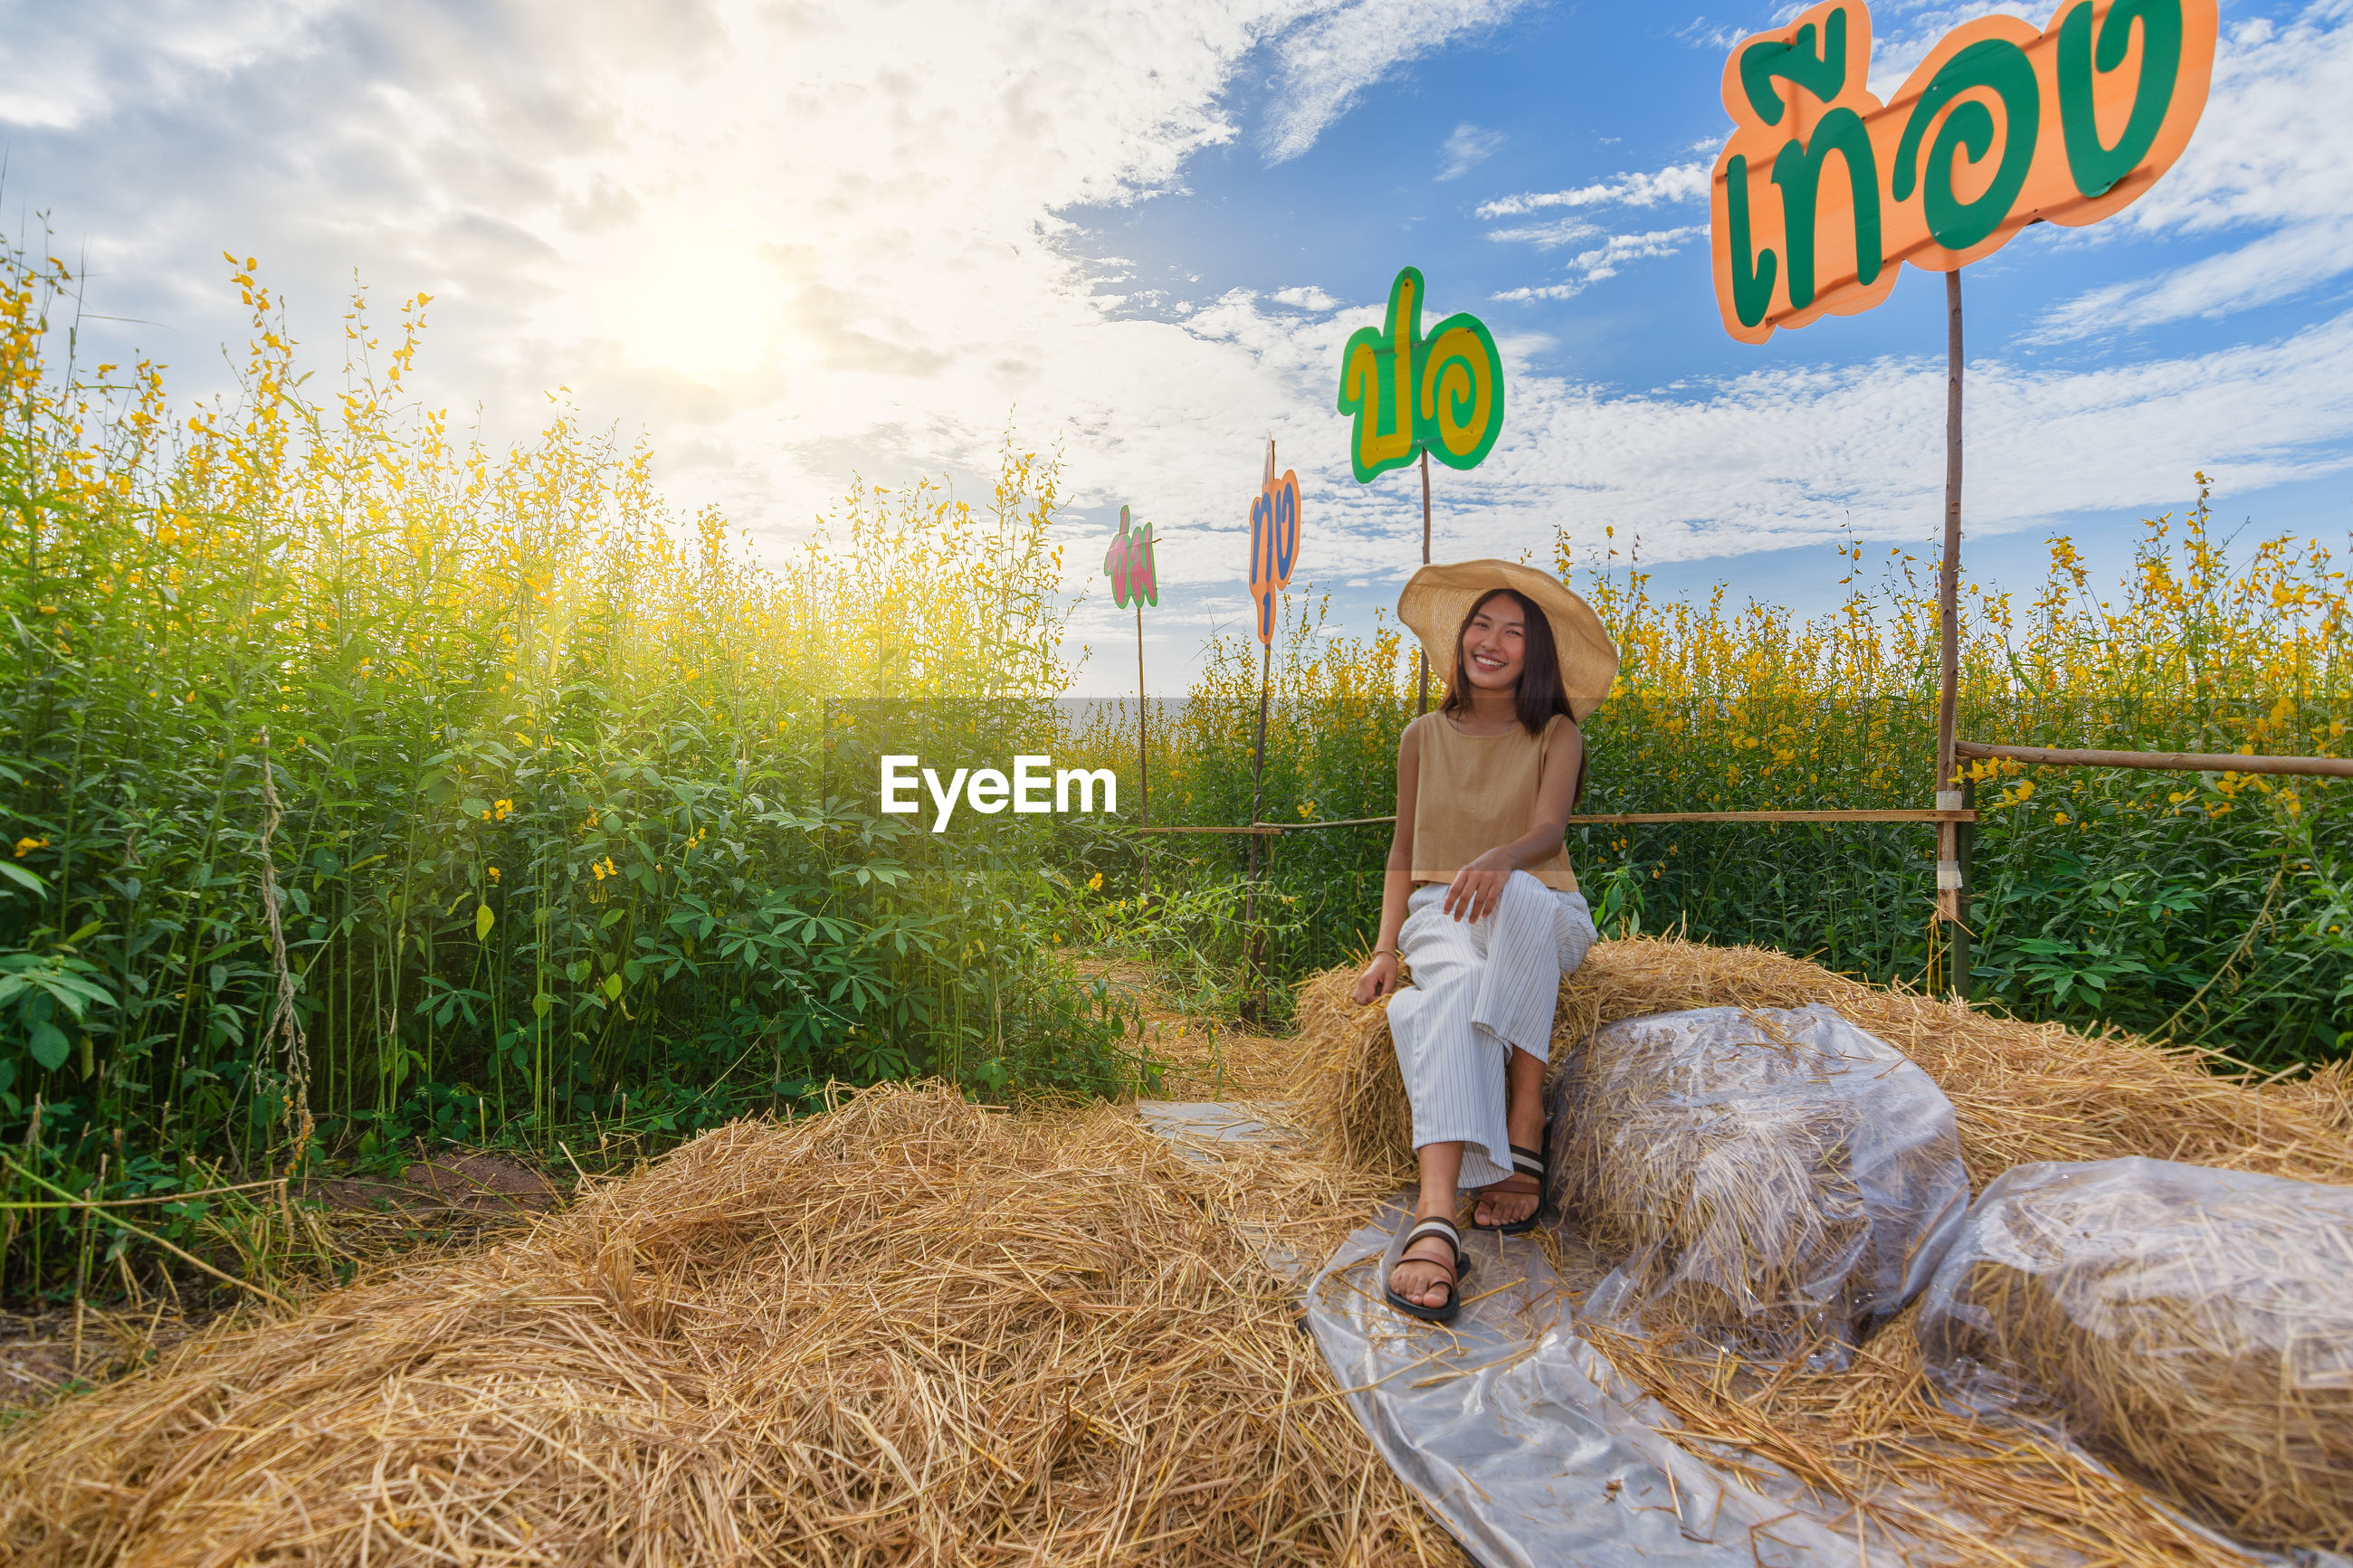 Full length of woman sitting on hay bale against text and sky